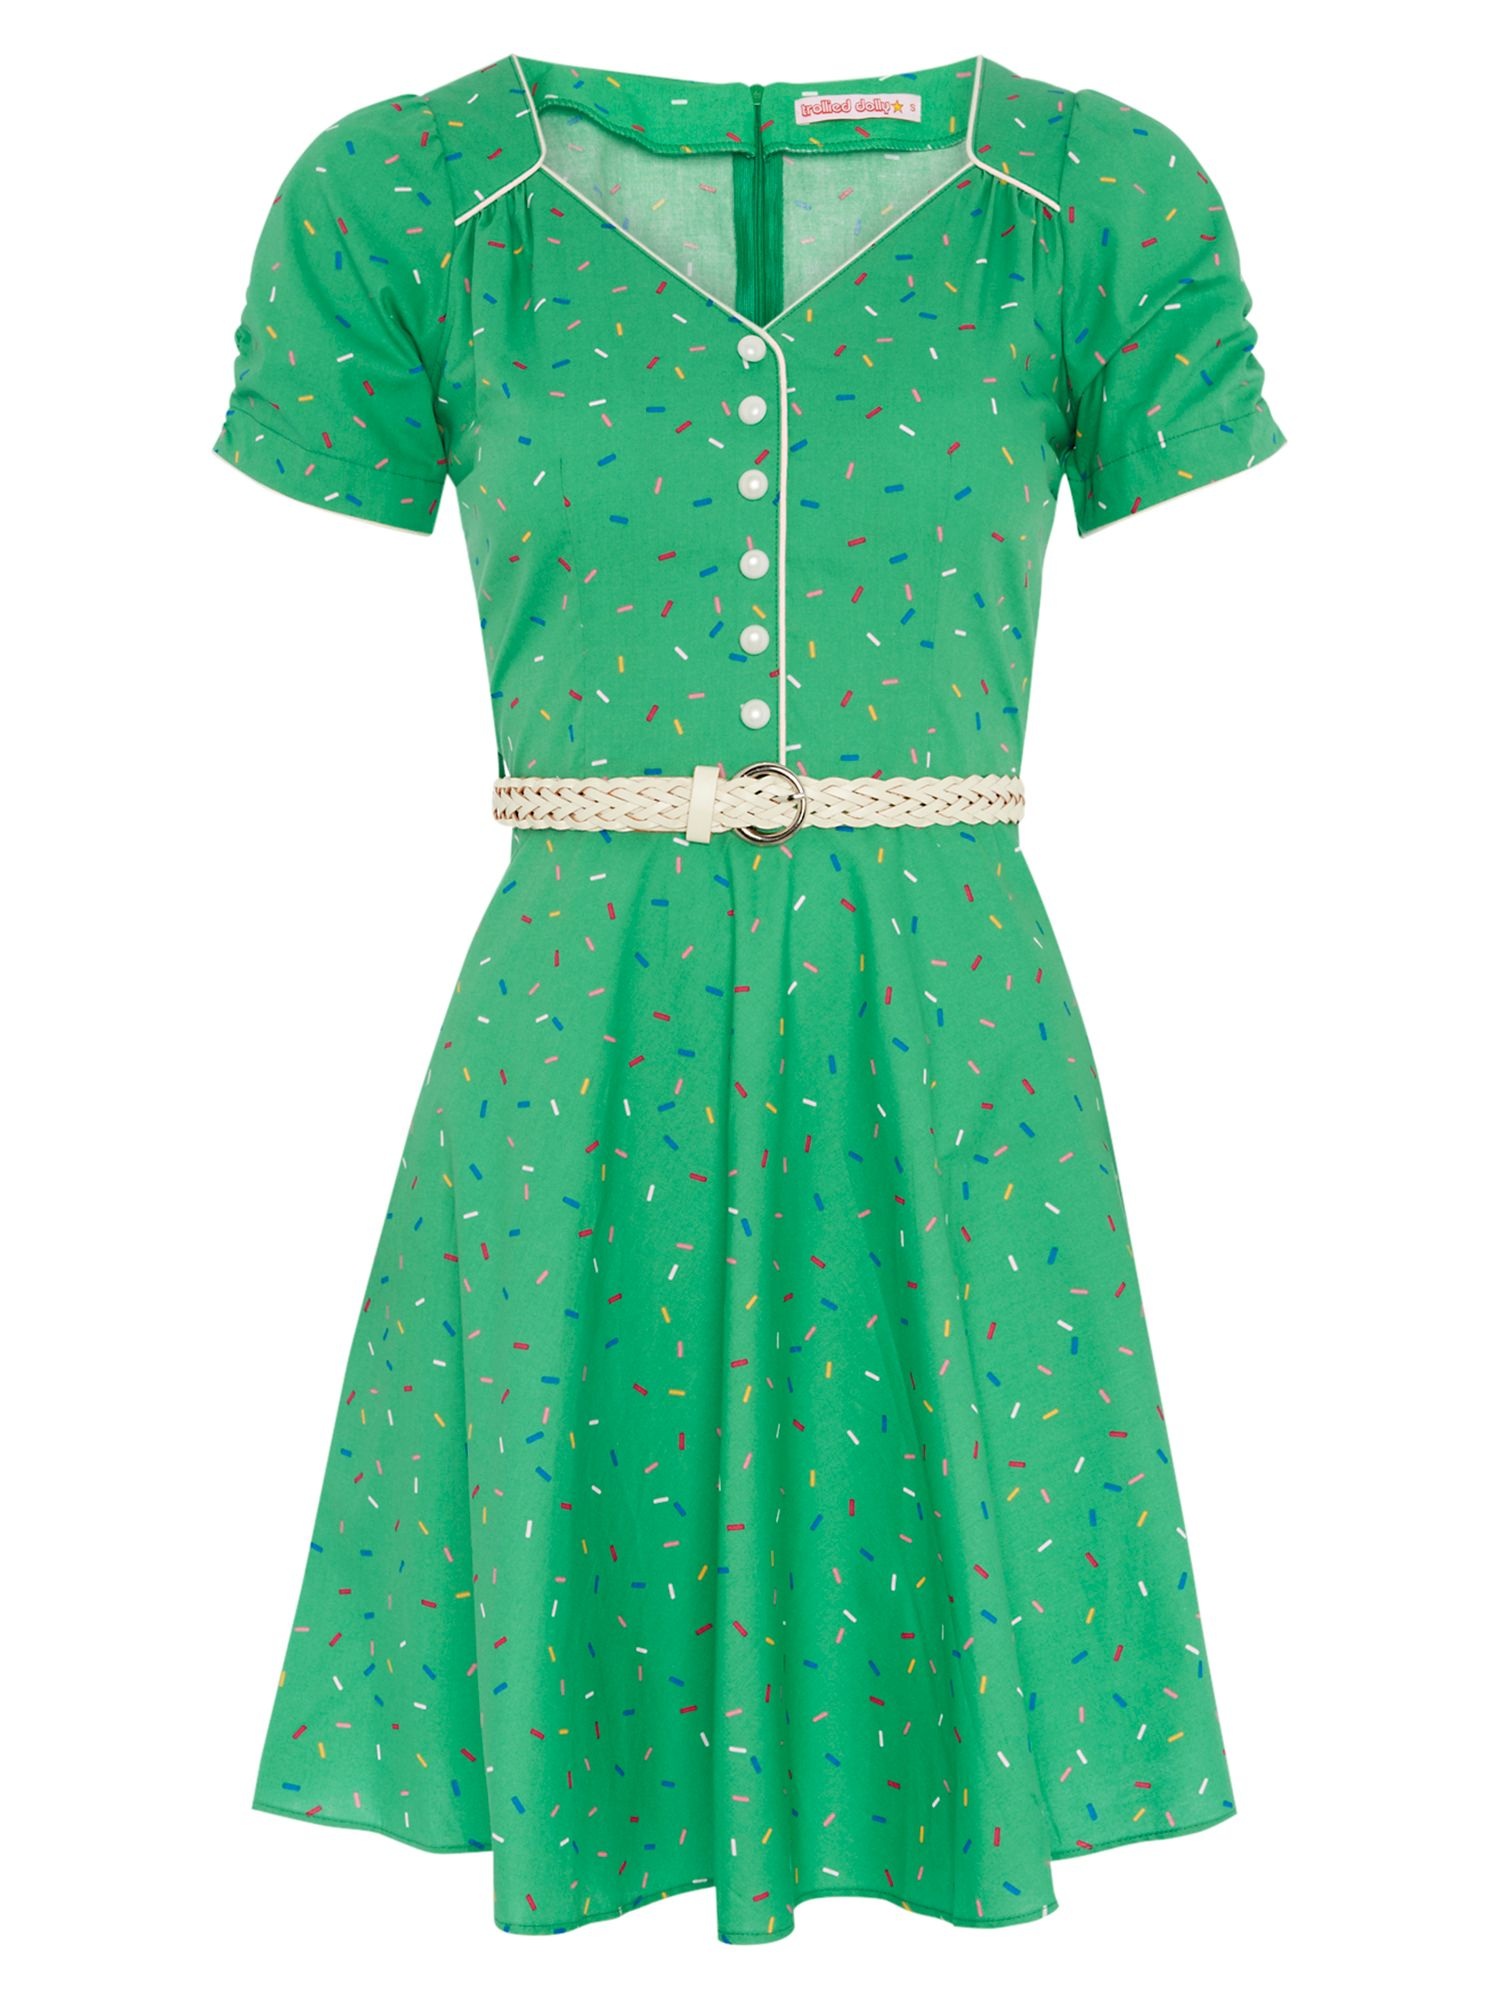 Buttoned tea dress